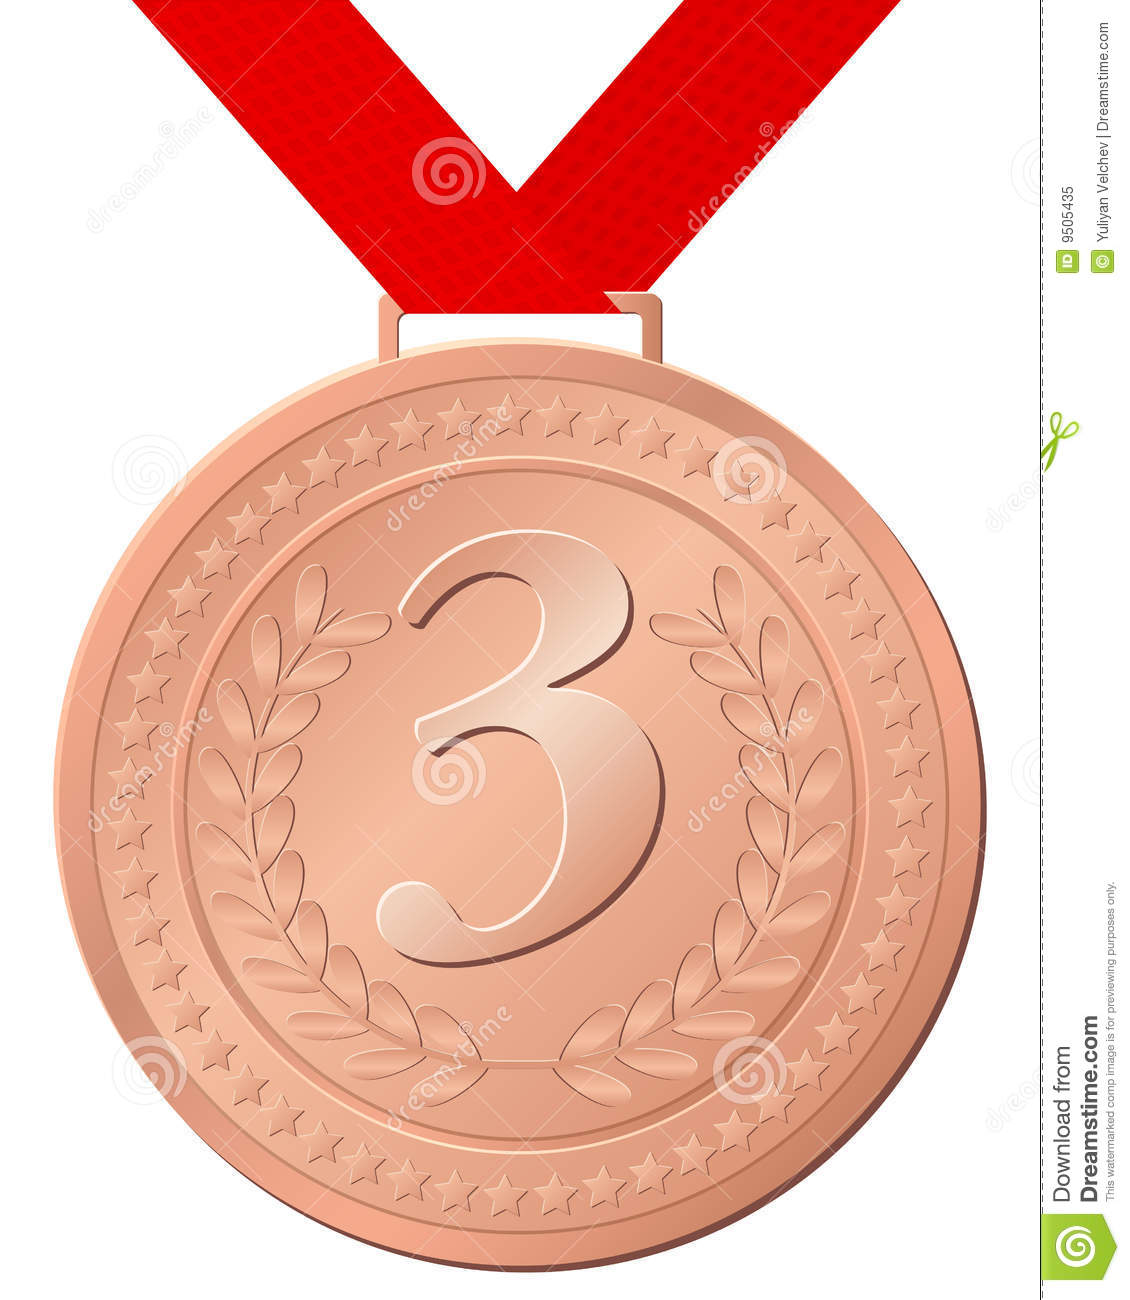 Bronze medal isolated on a white background. Vector illustration.